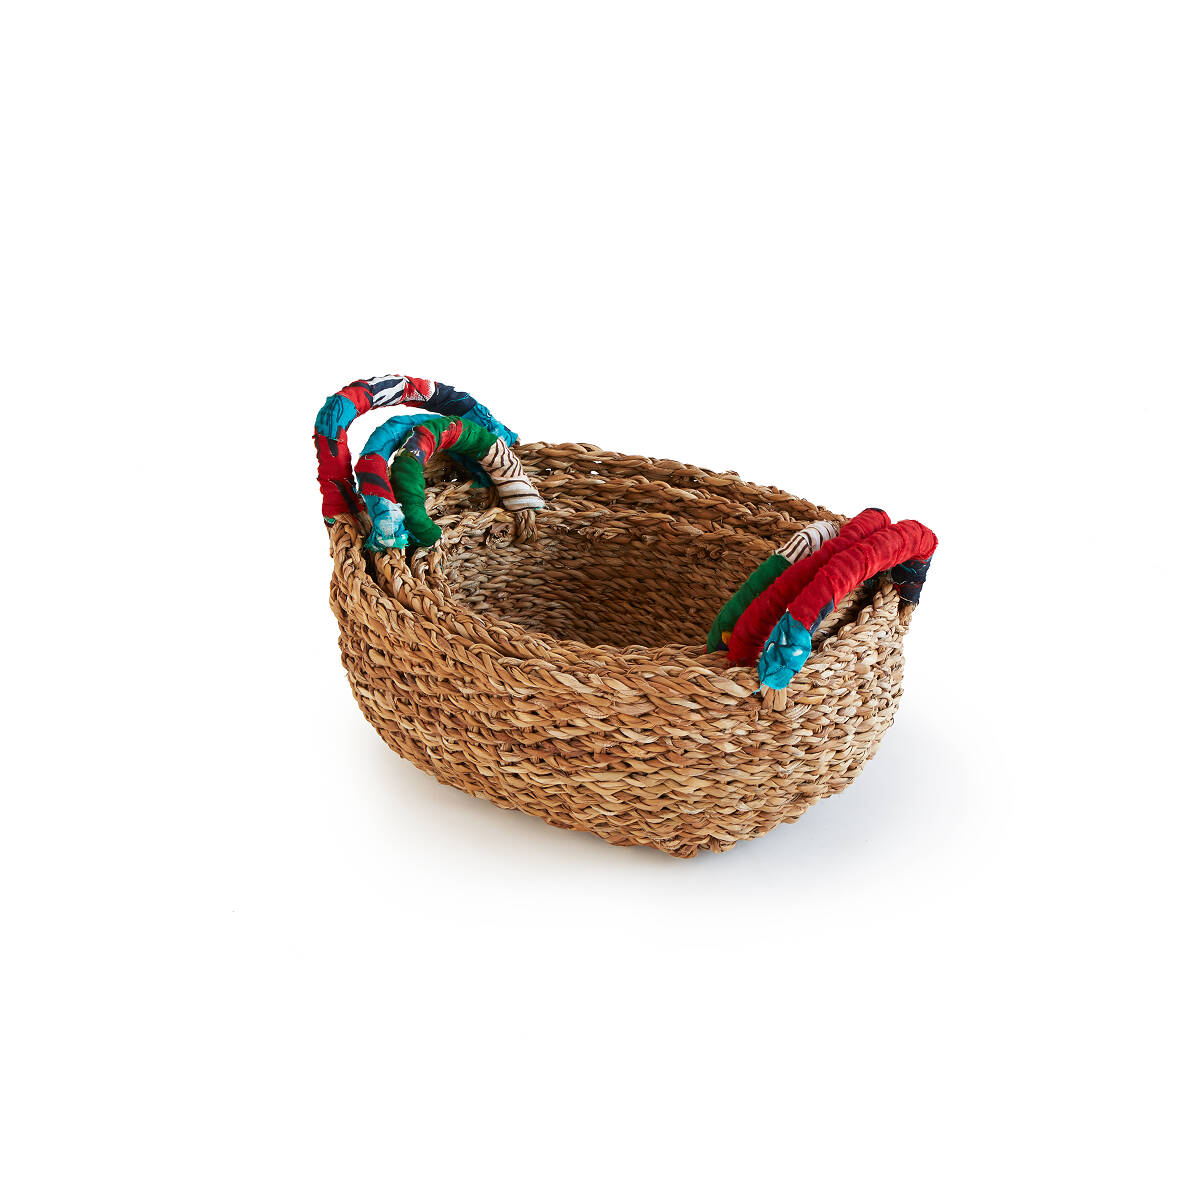 Seagrass Nesting Storage Baskets - Set of 3 | Woven Baskets, Jute ...